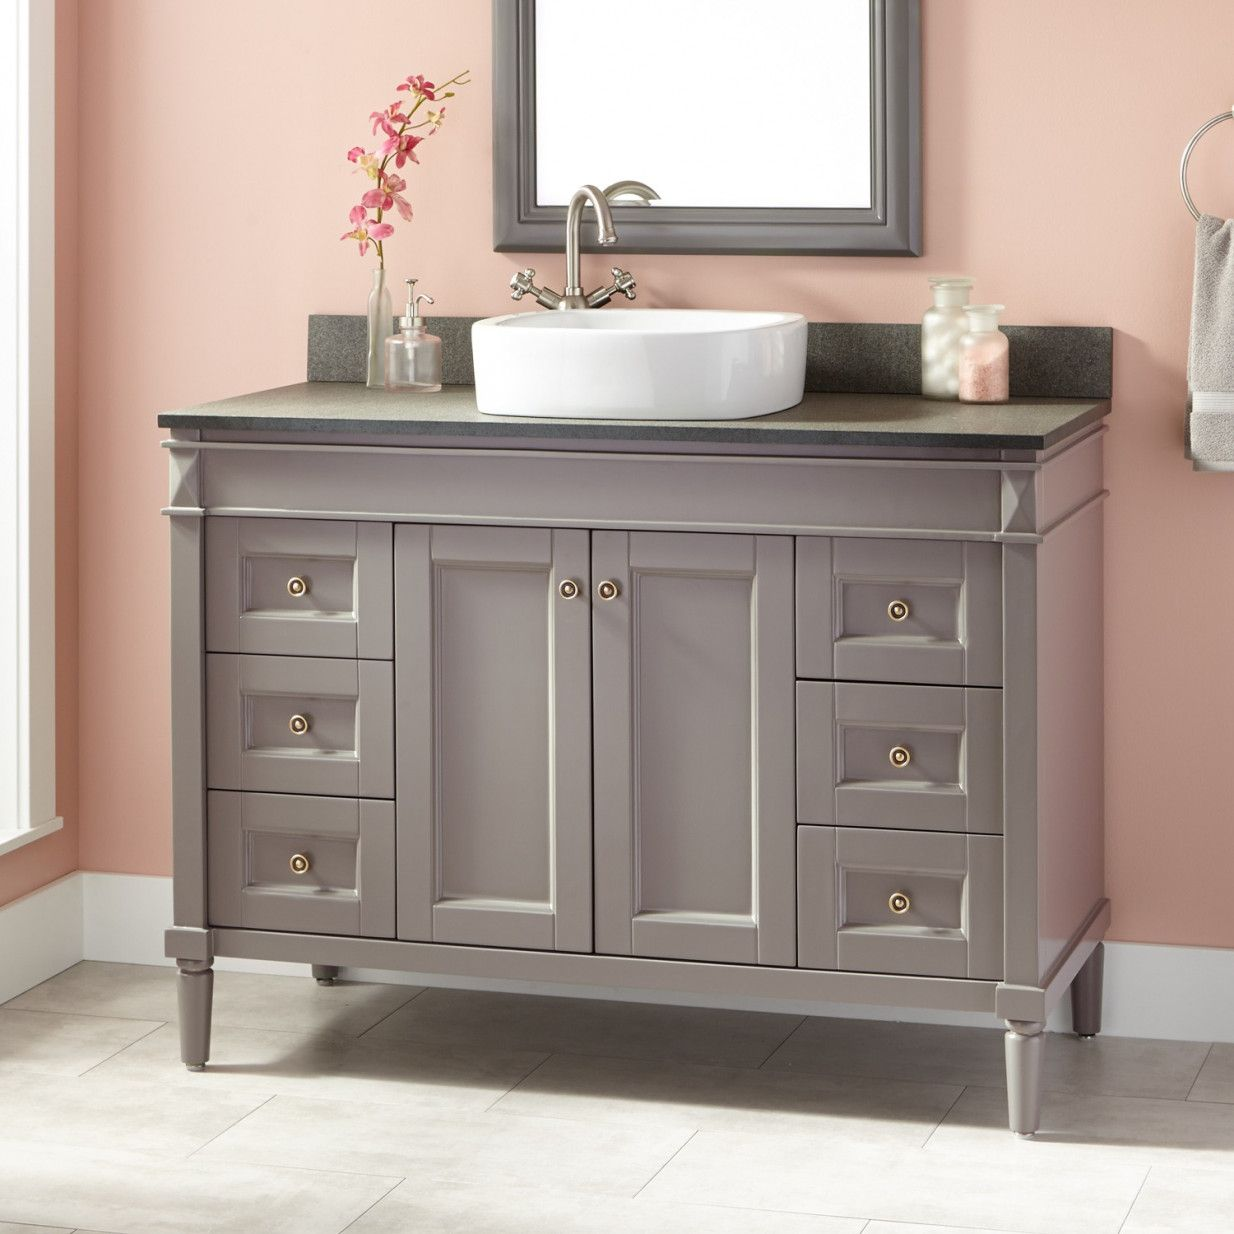 2019 Bathroom Vanity Cabinets For Vessel Sinks   Favorite Interior Paint  Colors Check More At Http